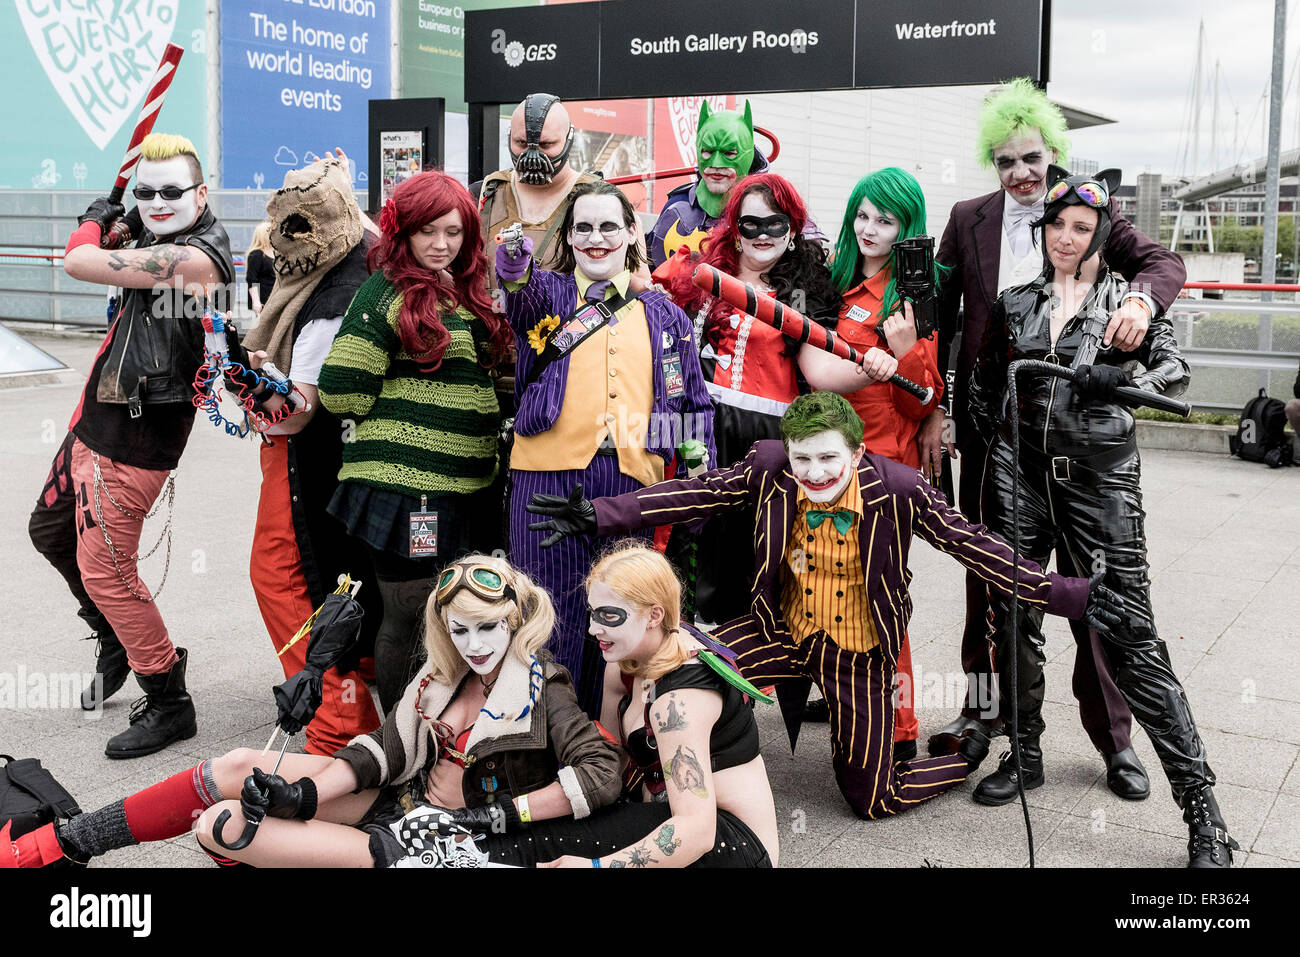 A group of cosplay enthusiasts attending the MCM London Comic Con at the Excel centre. - Stock Image